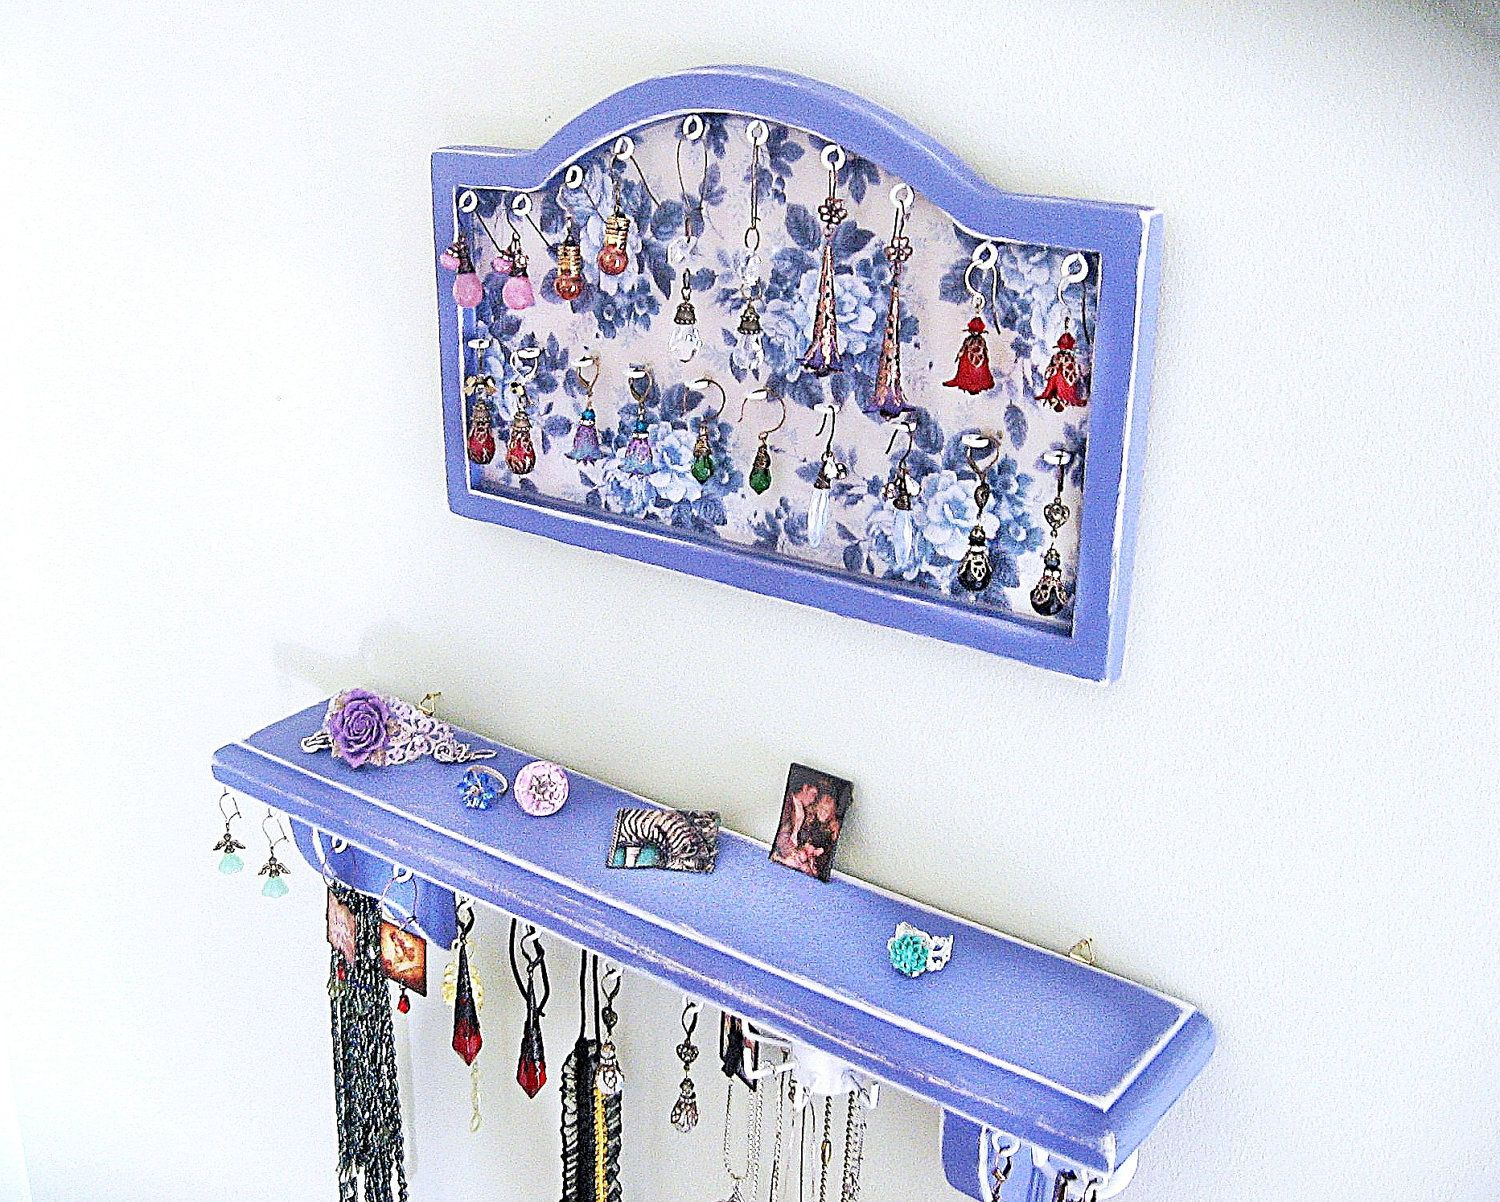 jewelry frame Blue Jewelry Holder Jewelry Organizer Jewelry